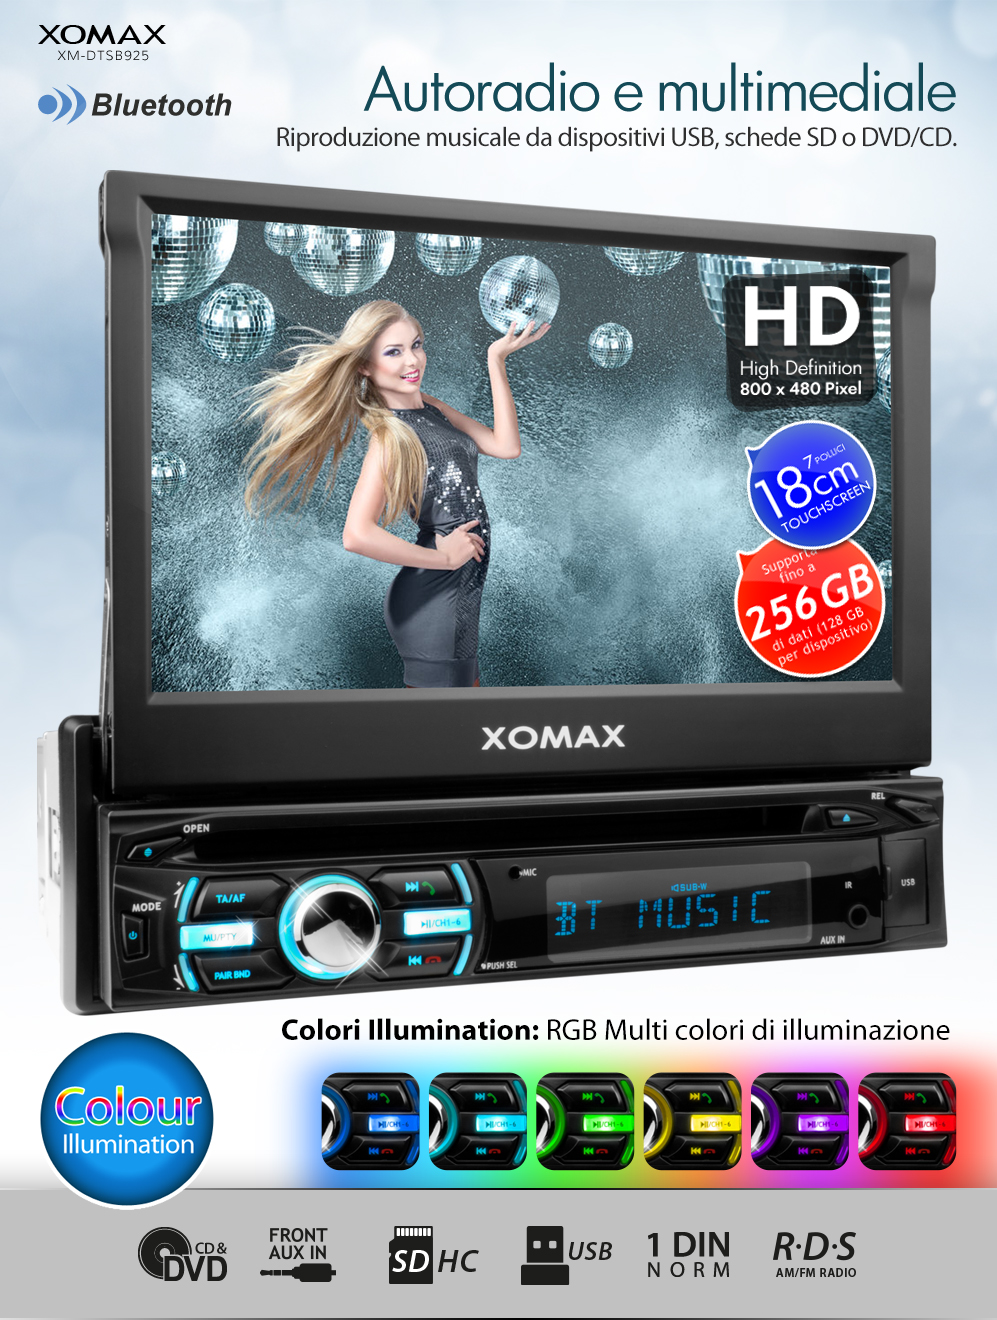 autoradio con bluetooth 18cm touchscreen dvd cd player usb. Black Bedroom Furniture Sets. Home Design Ideas